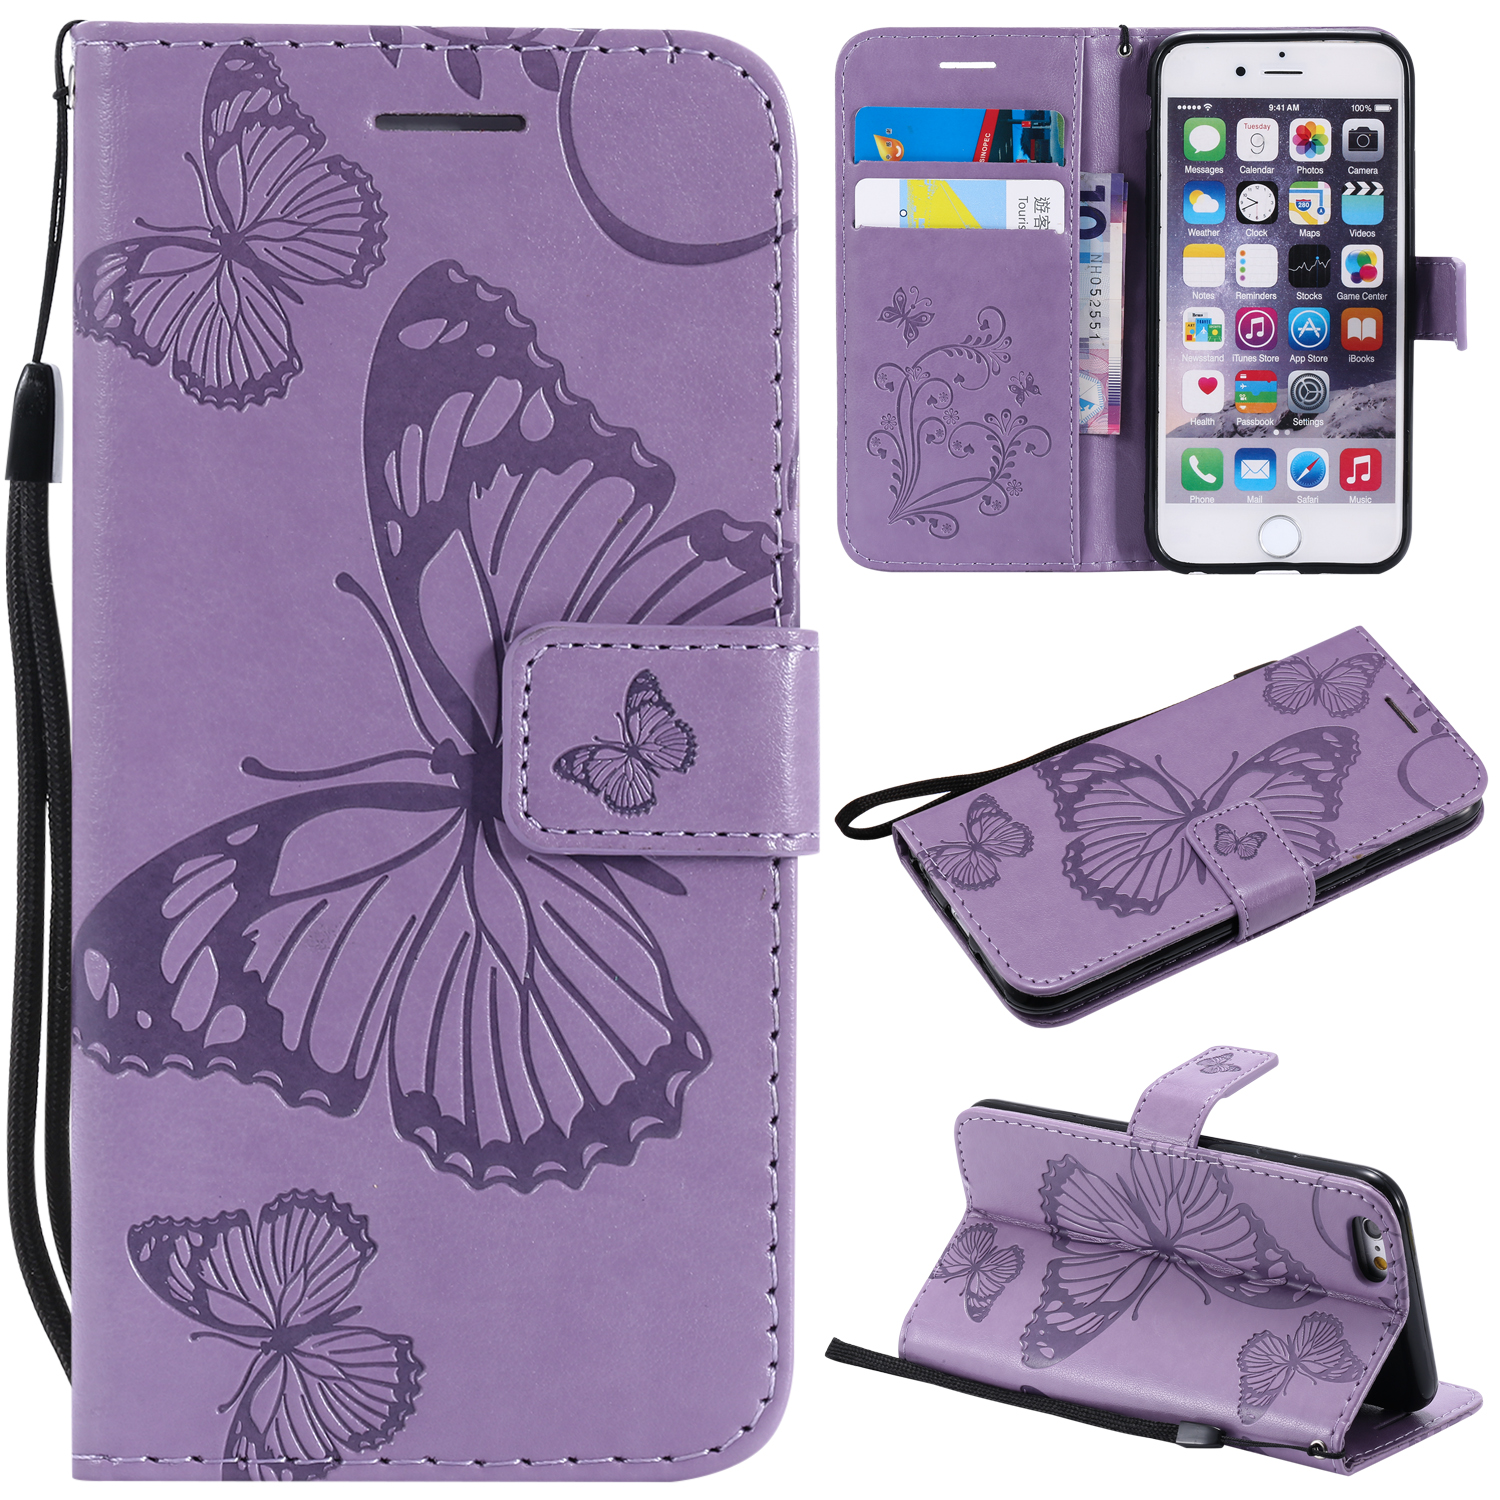 iPhone 6 Plus/ 6S Plus Wallet case, Allytech Pretty Retro Embossed Butterfly Flower Design PU Leather Book Style Wallet Flip Case Cover for Apple iPhone 6 Plus and iPhone 6S Plus, Purple